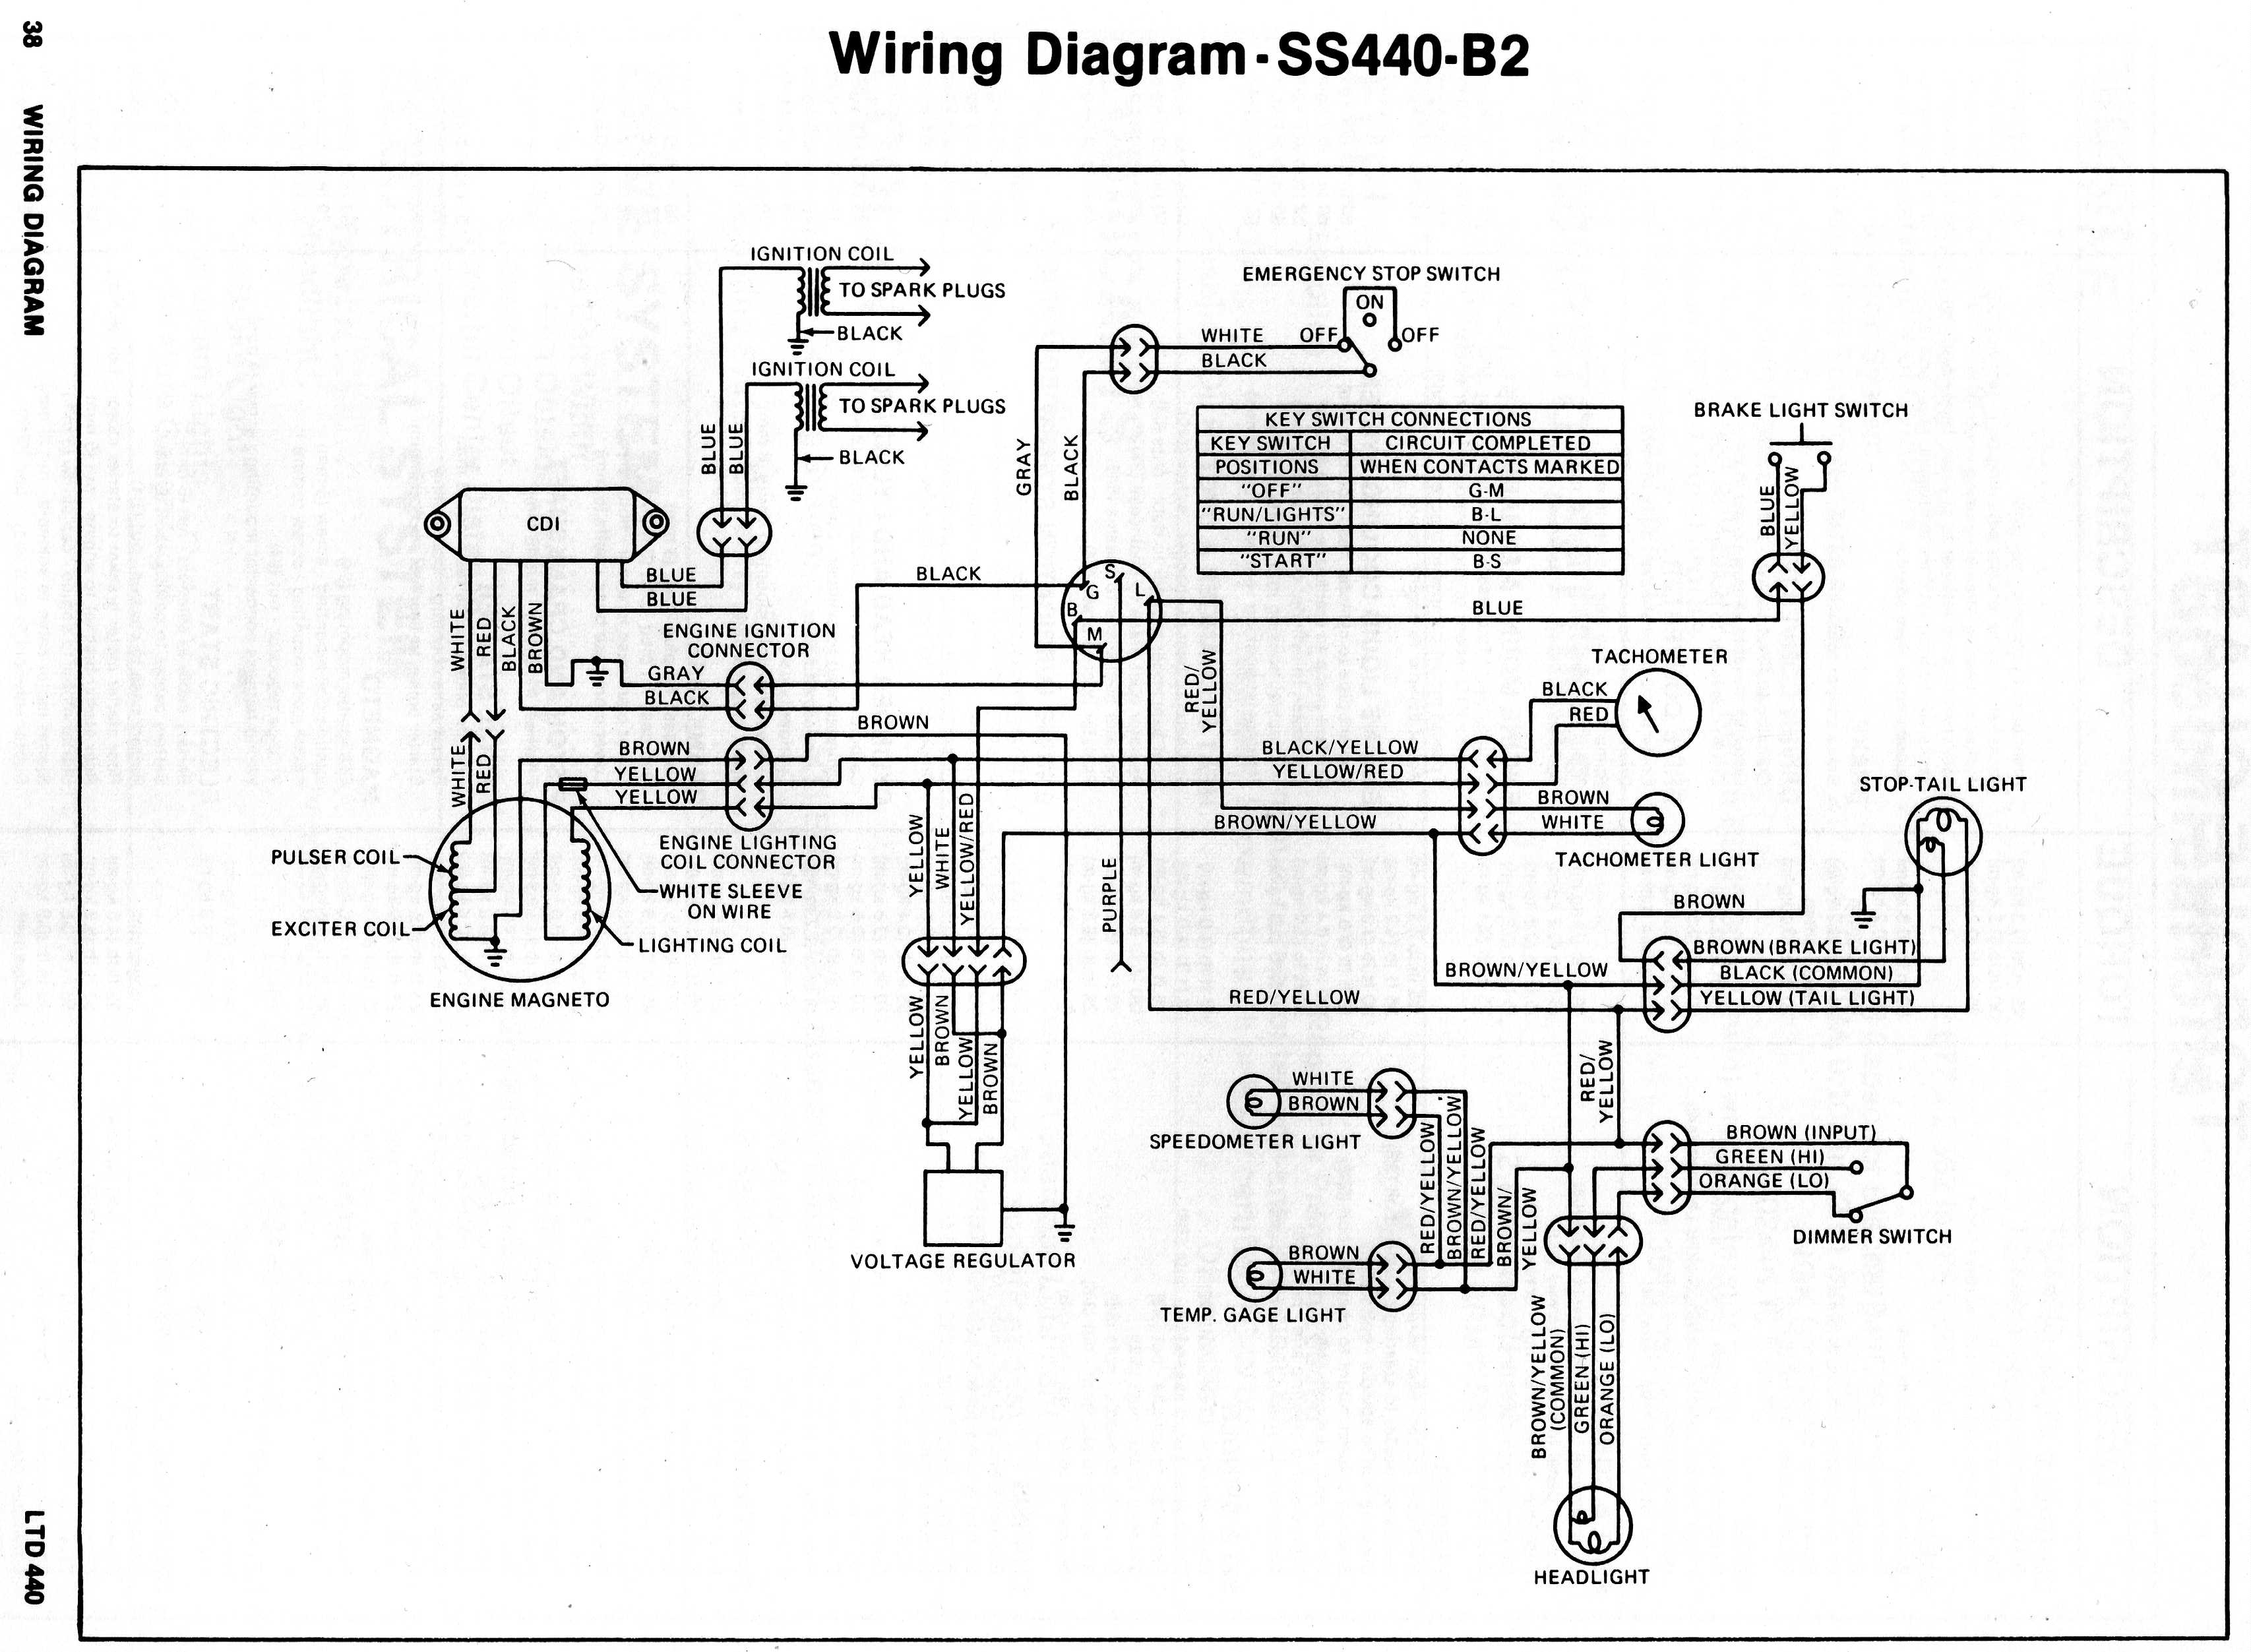 kawasaki invader snowmobile wiring diagrams rh kawisncats freevar com